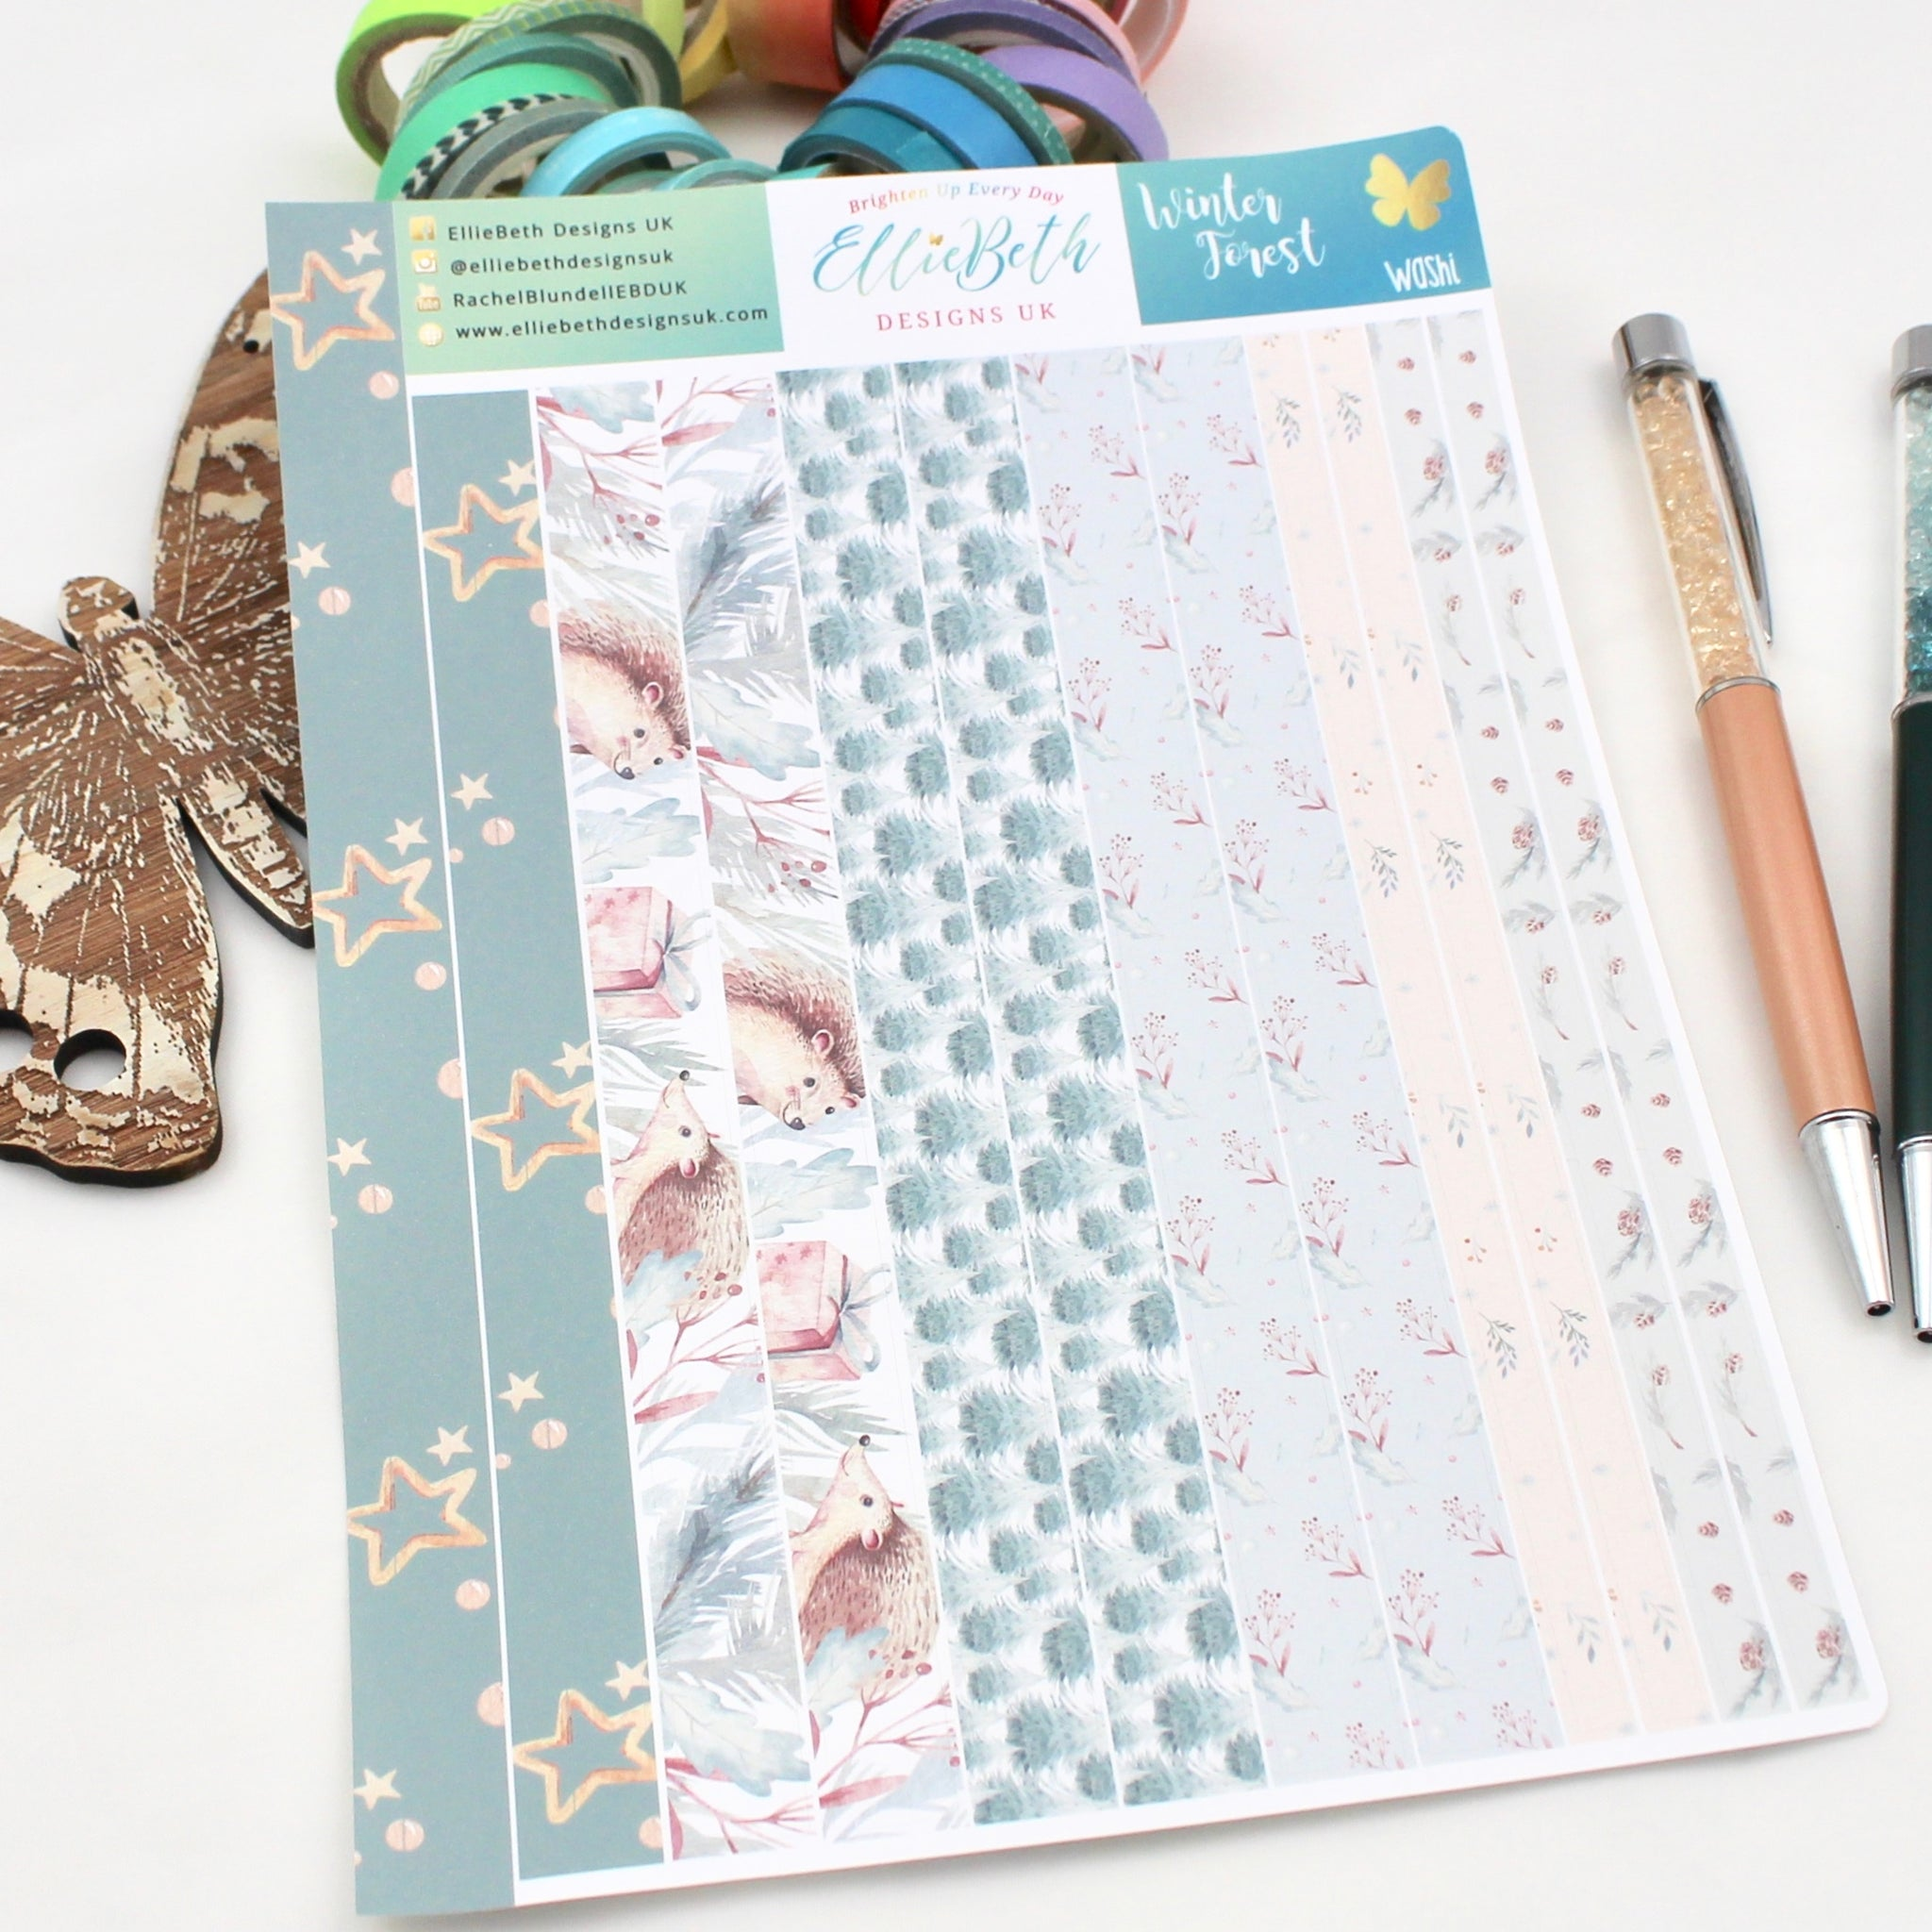 Winter Forest - Washi Strips -  A5 binder ready planner stickers - EllieBeth Designs UK